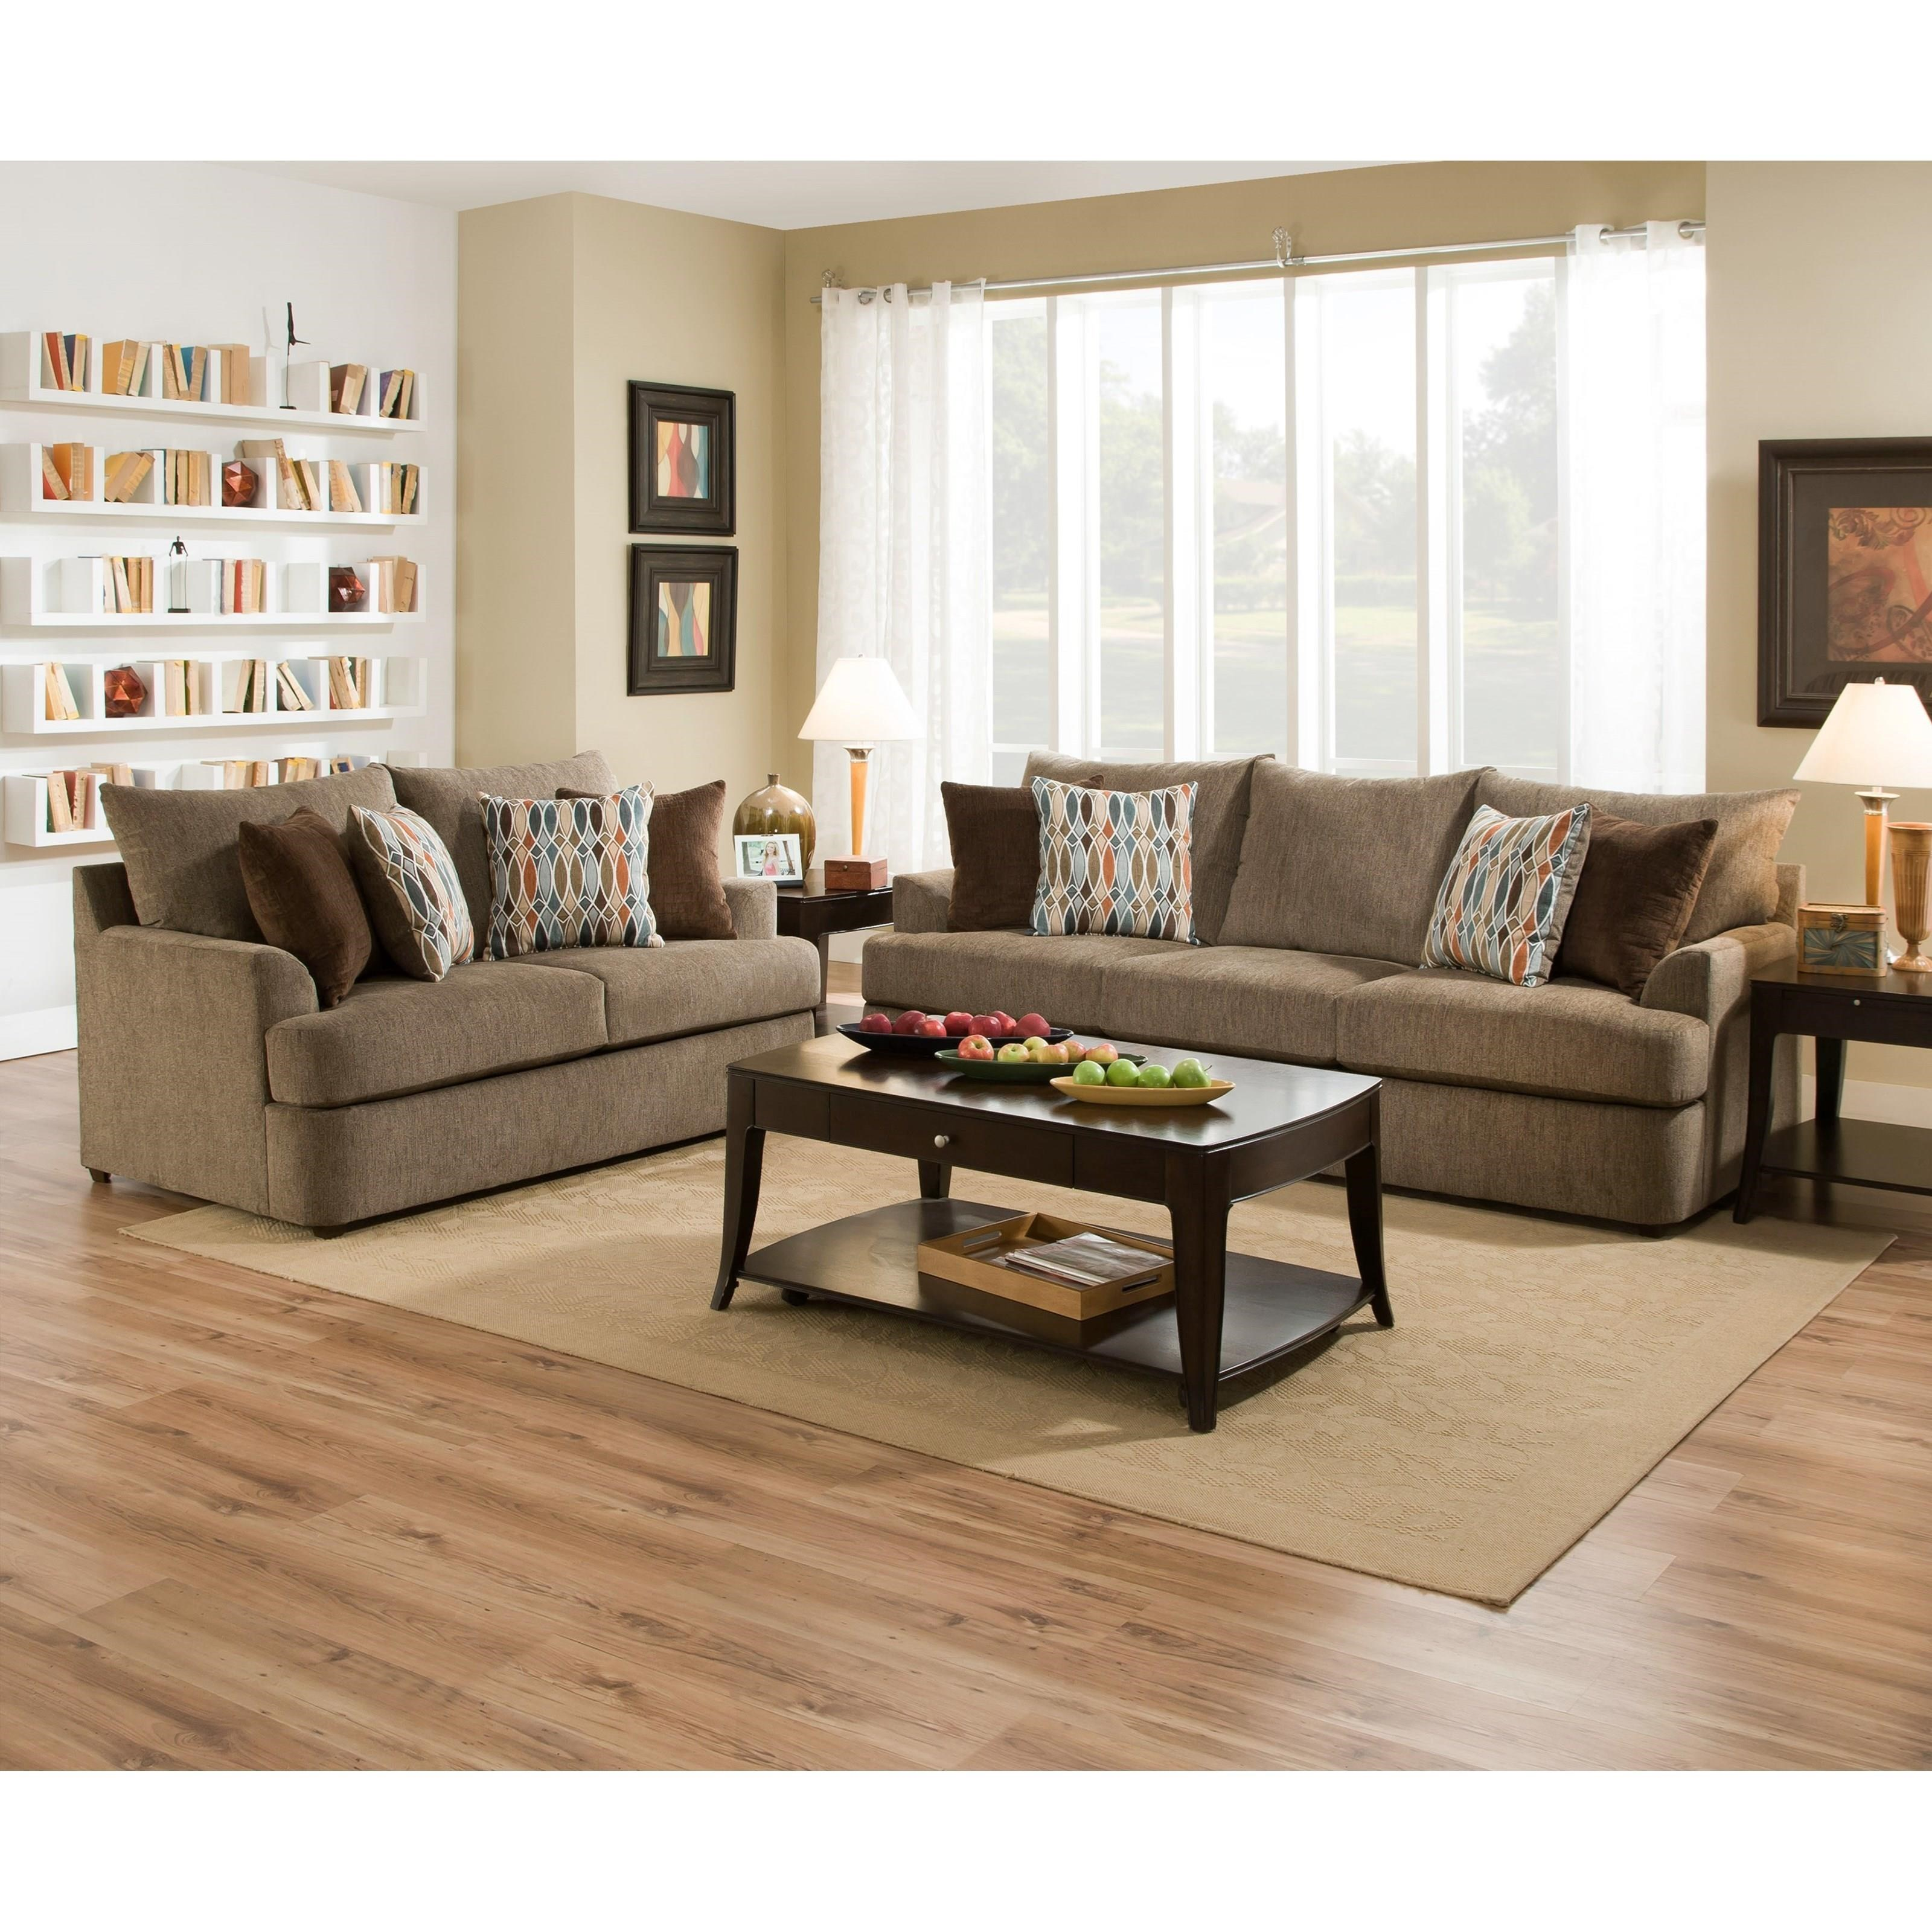 United Furniture Industries 8540BR 8540BRSofa